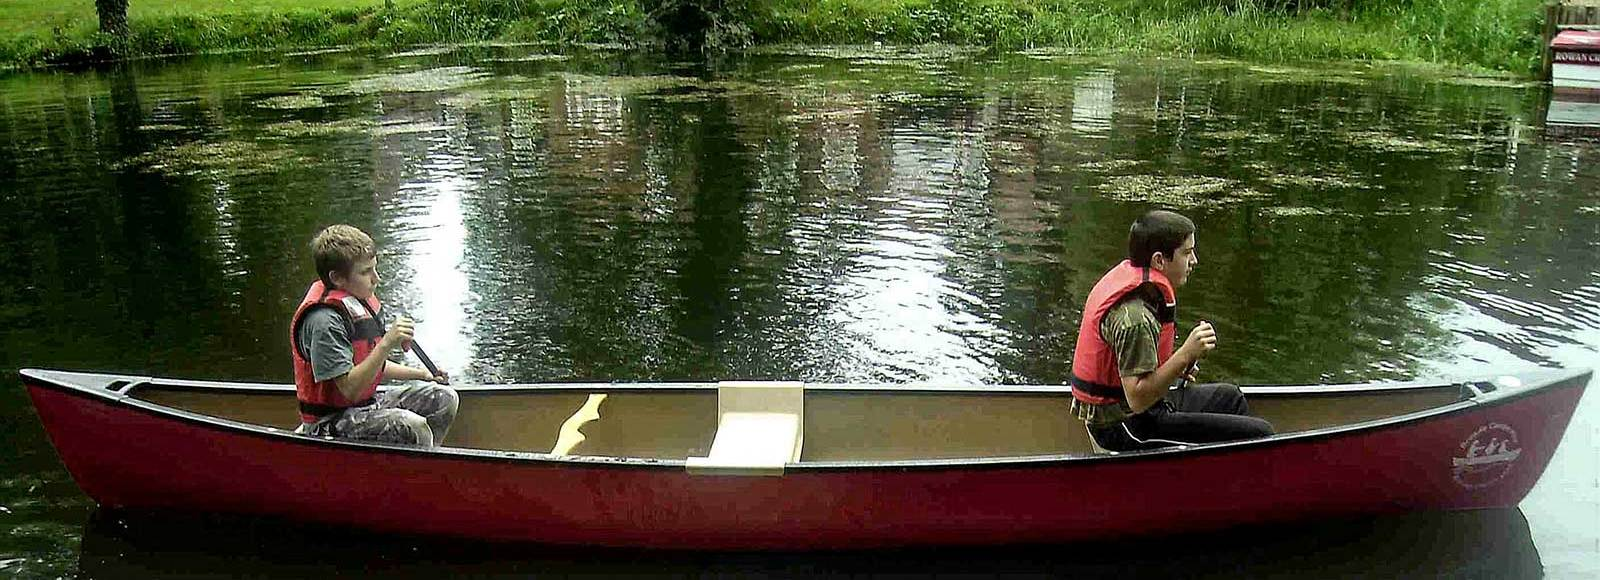 Canoe hire Beccles and Geldeston